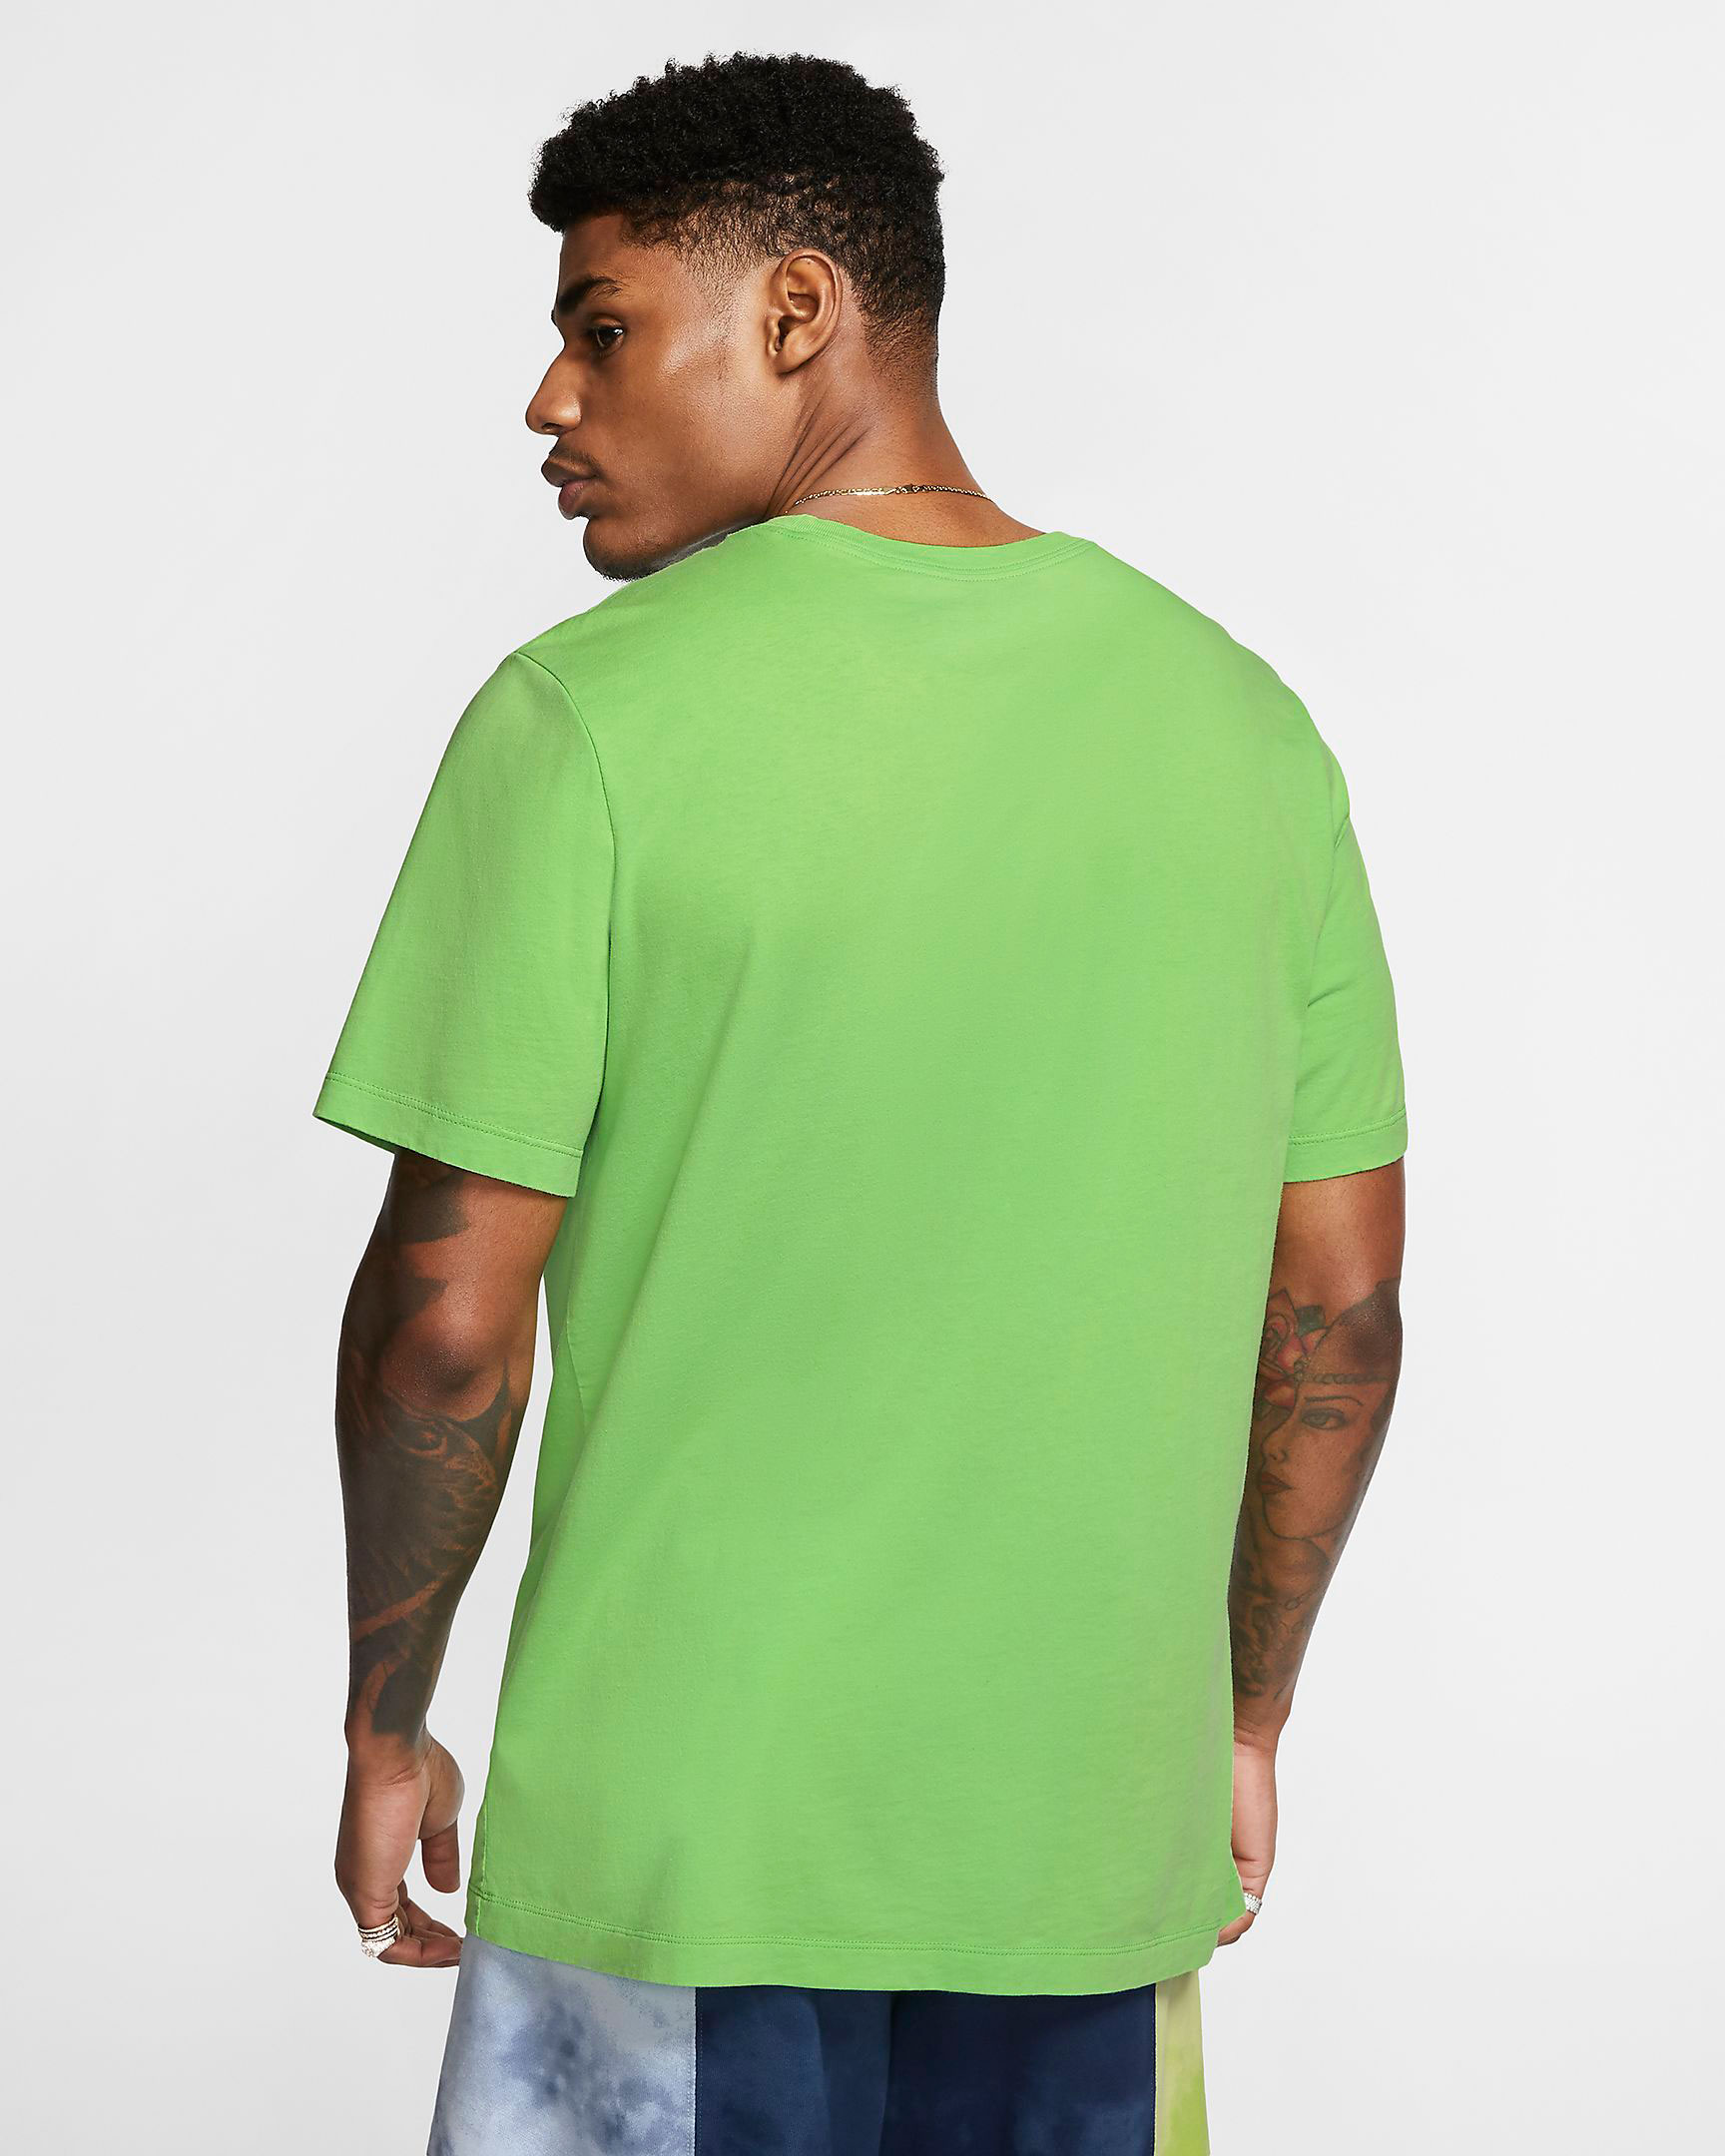 air-jordan-1-zoom-zen-green-shirt-match-3